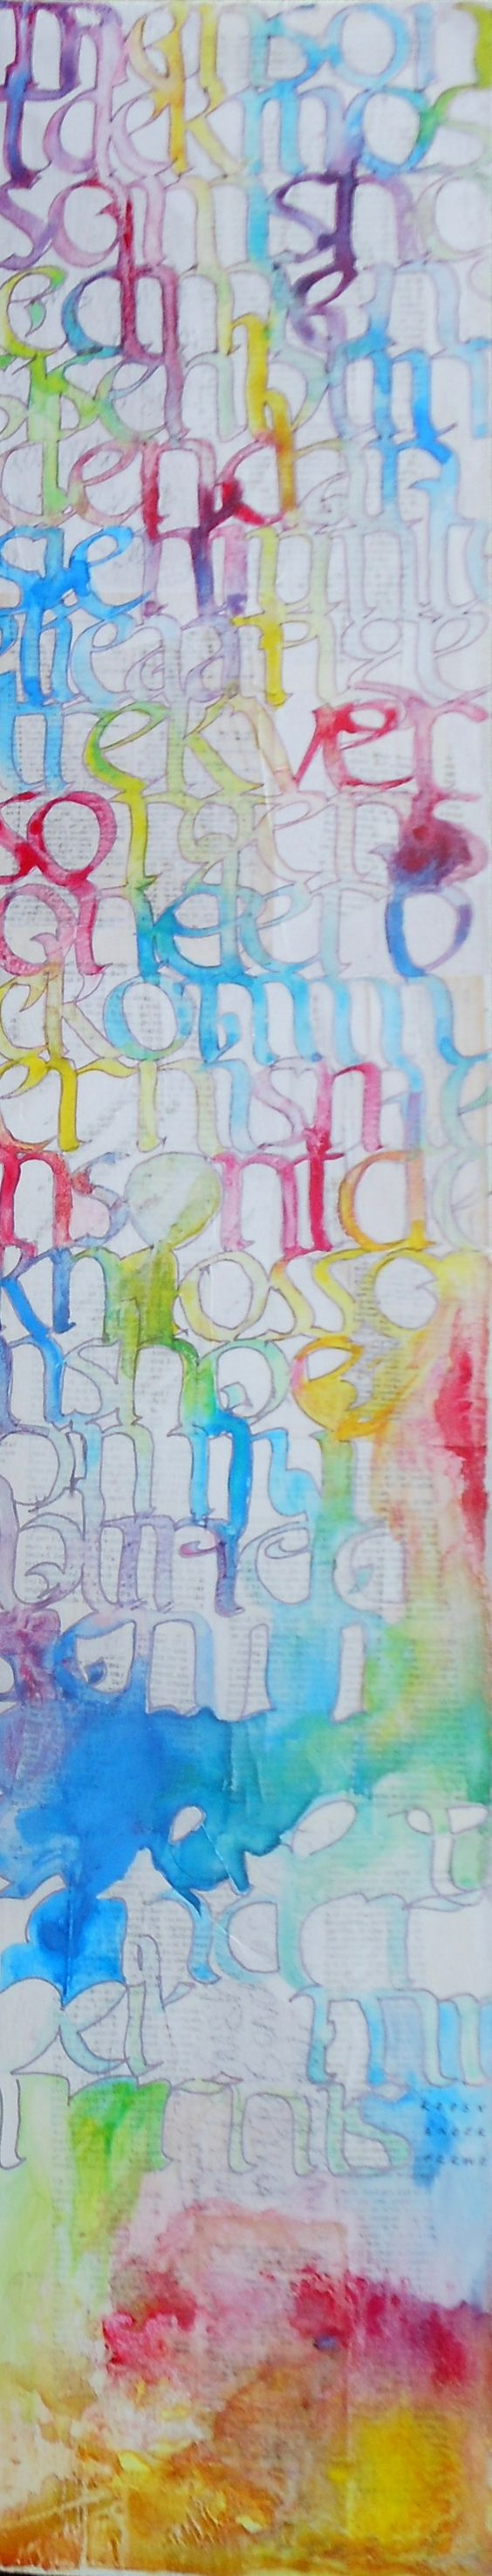 Poetry by Koos van der Merwe  1000 x 200mm Acrylic ink on wood  Price on request  www.letterdance.co.za